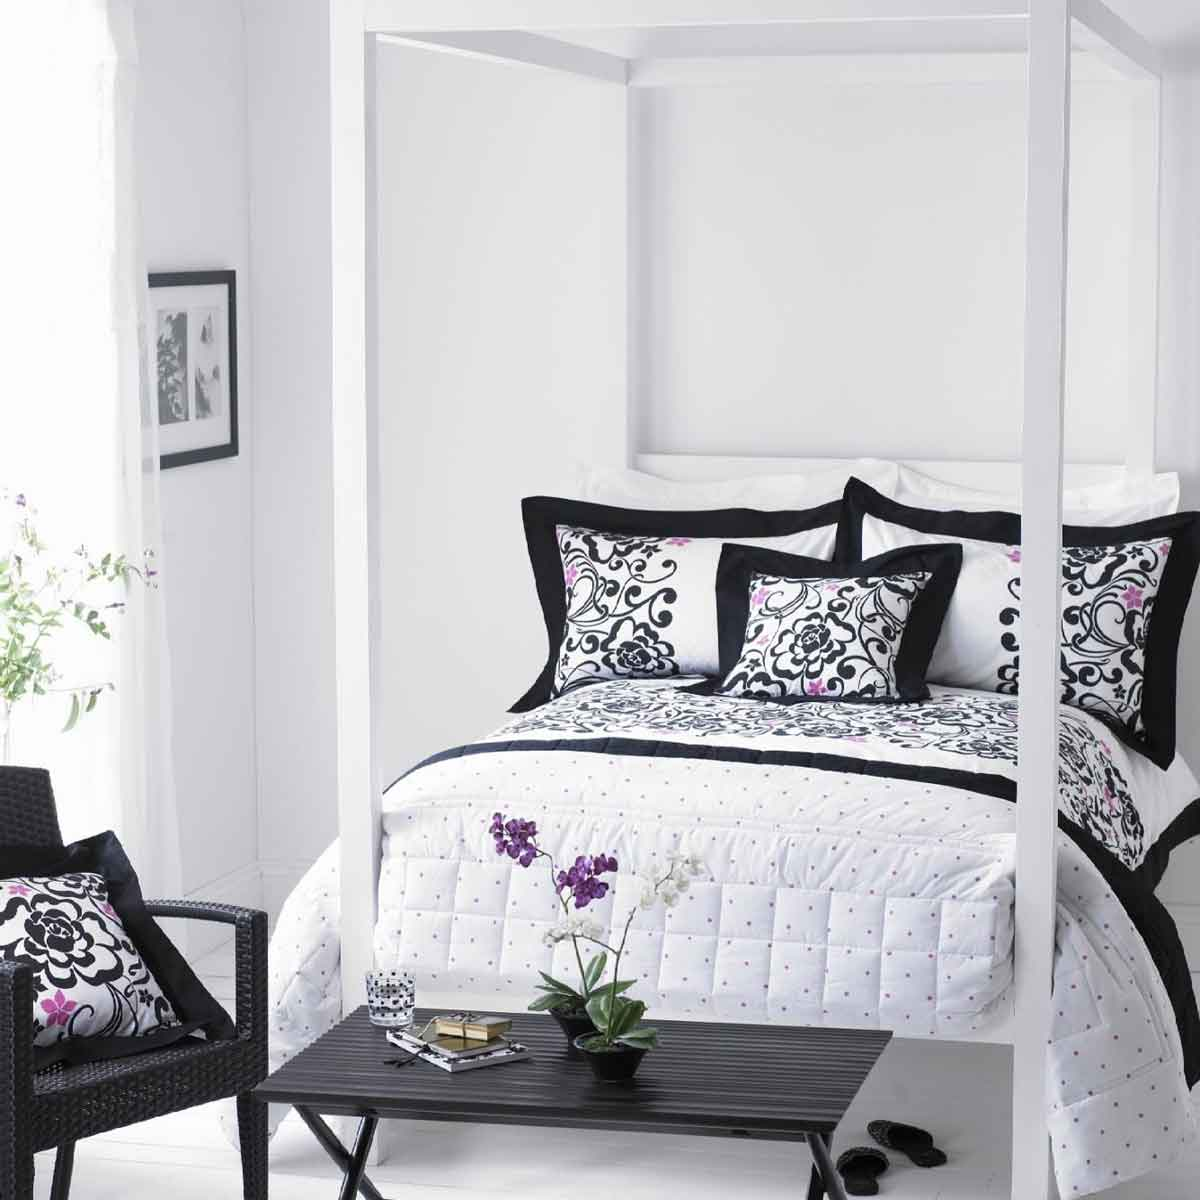 black white grey bedroom 2017 grasscloth wallpaper ForBlack White And Grey Room Decor